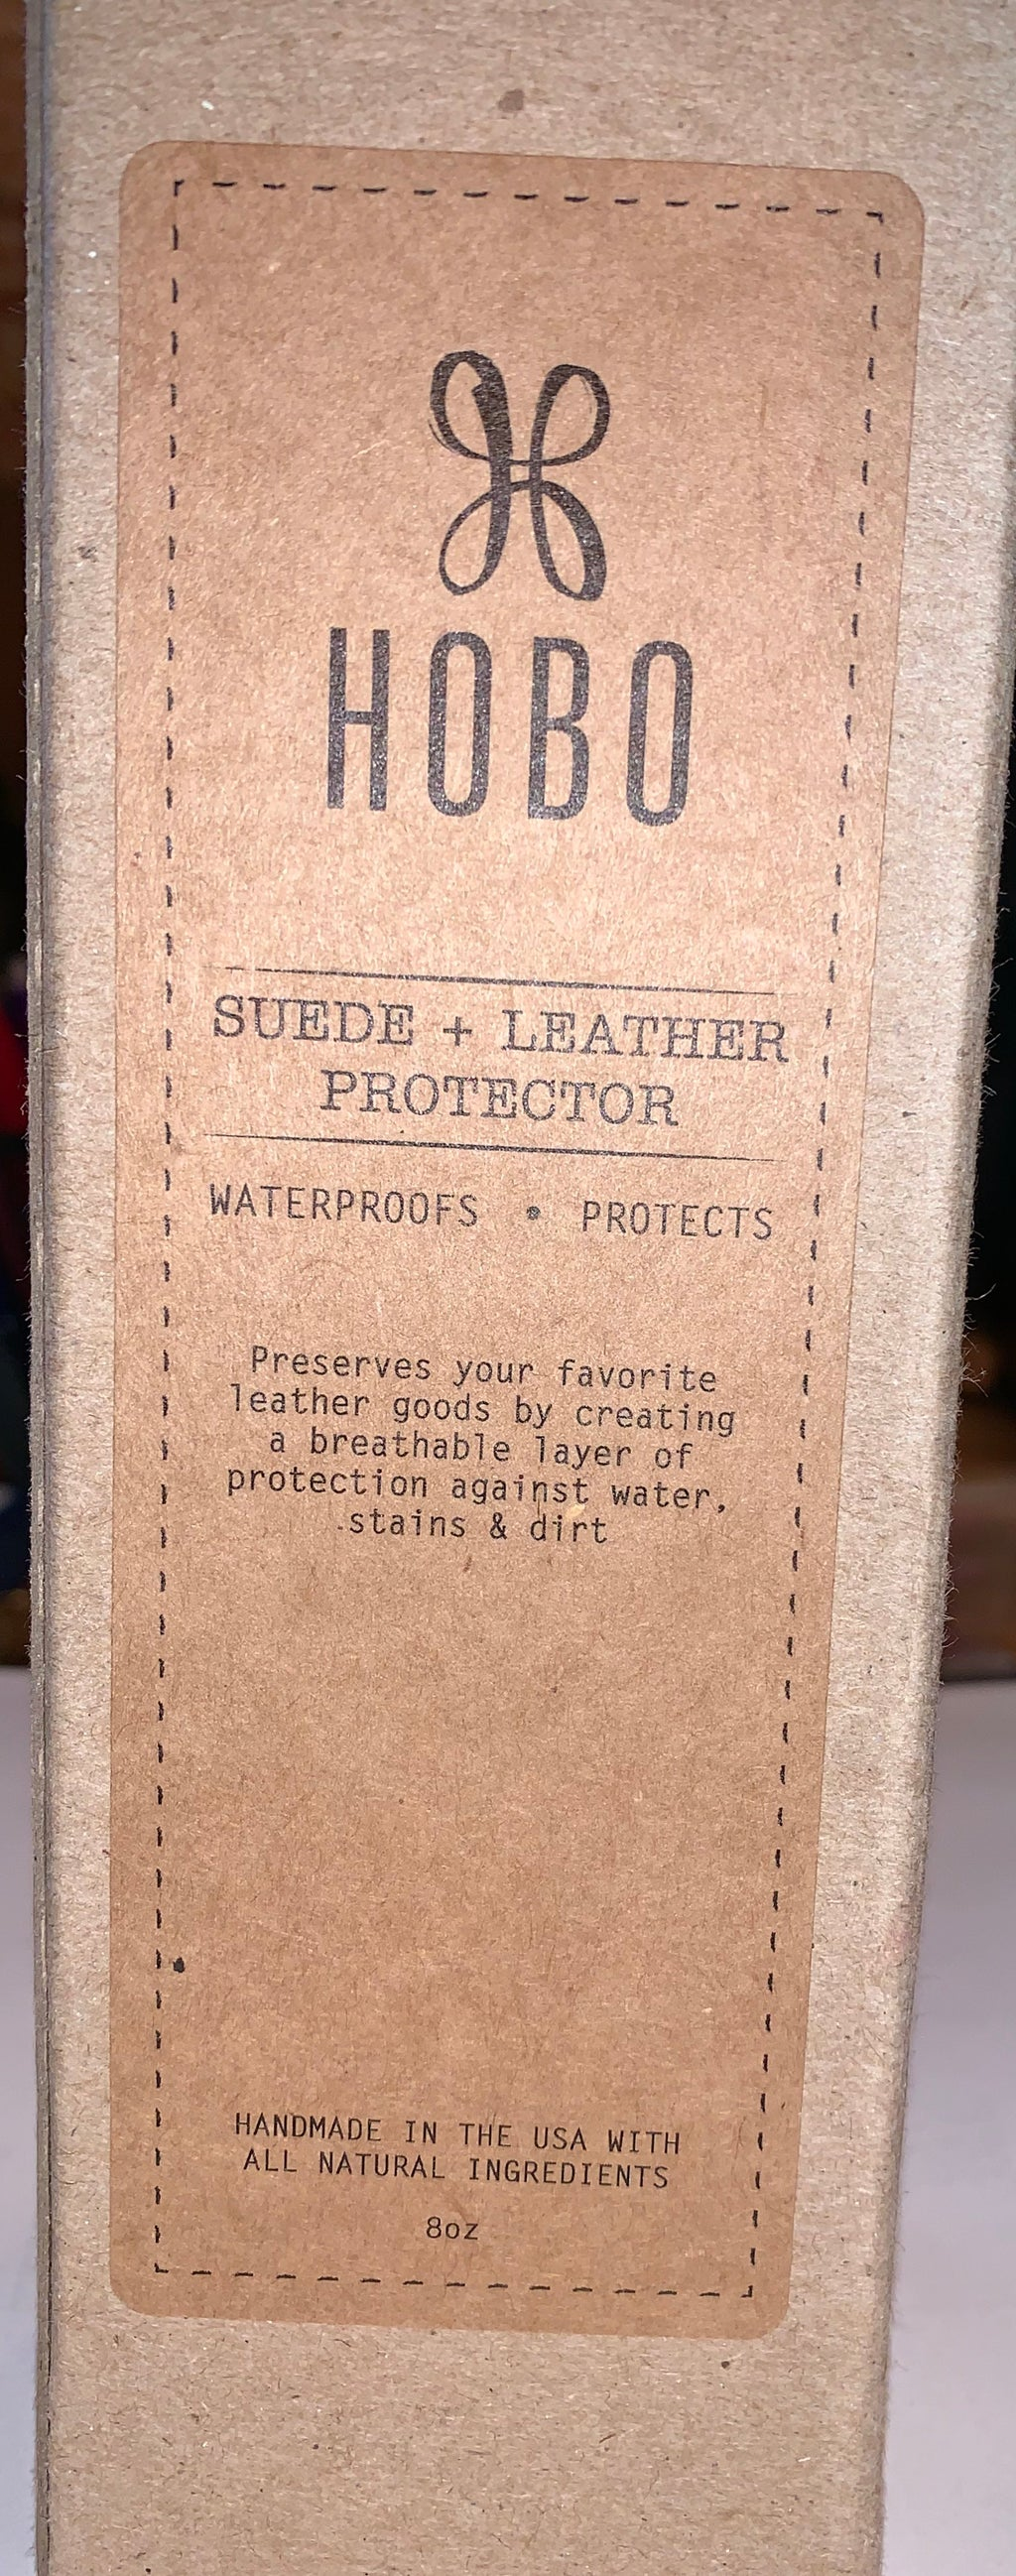 Hobo Suede and Leather Protector